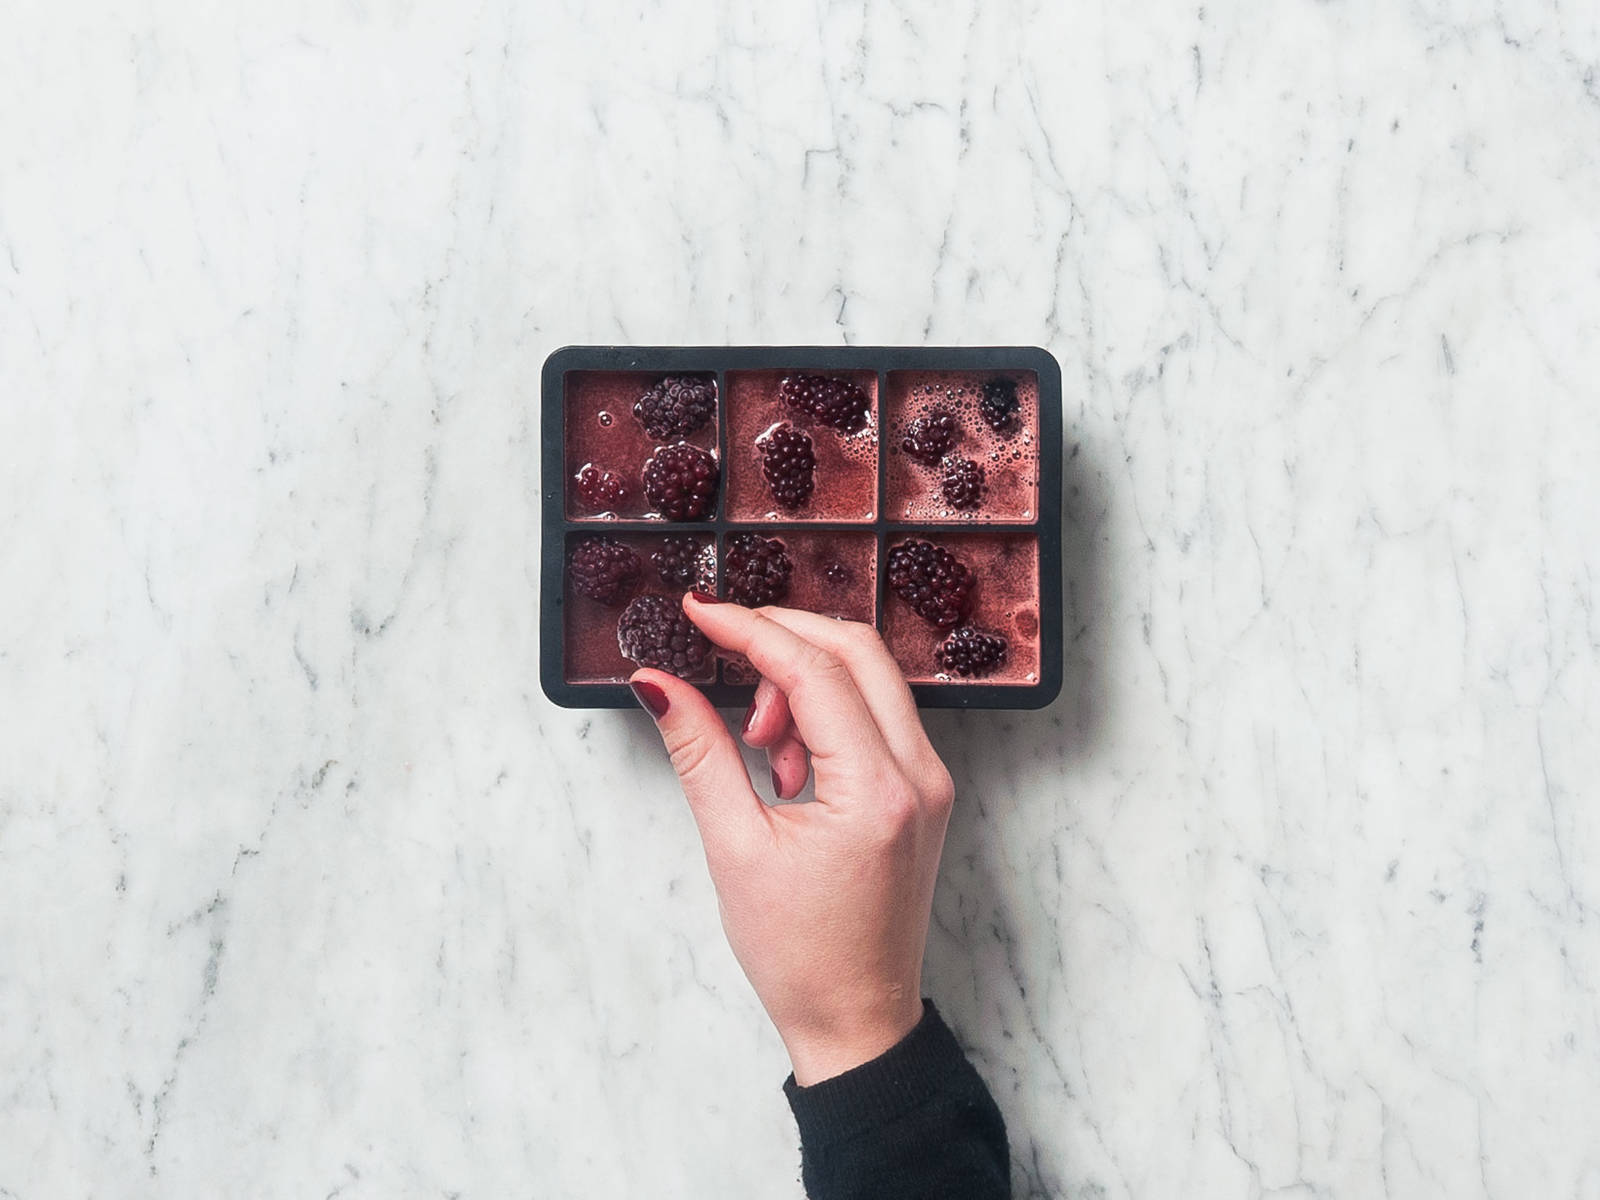 Fill ice cube tray approx. 2/3 of the way up with watermelon juice. Add an equal numer of frozen blackberries to each cube. Freeze for approx. 6 hrs. or until frozen through.